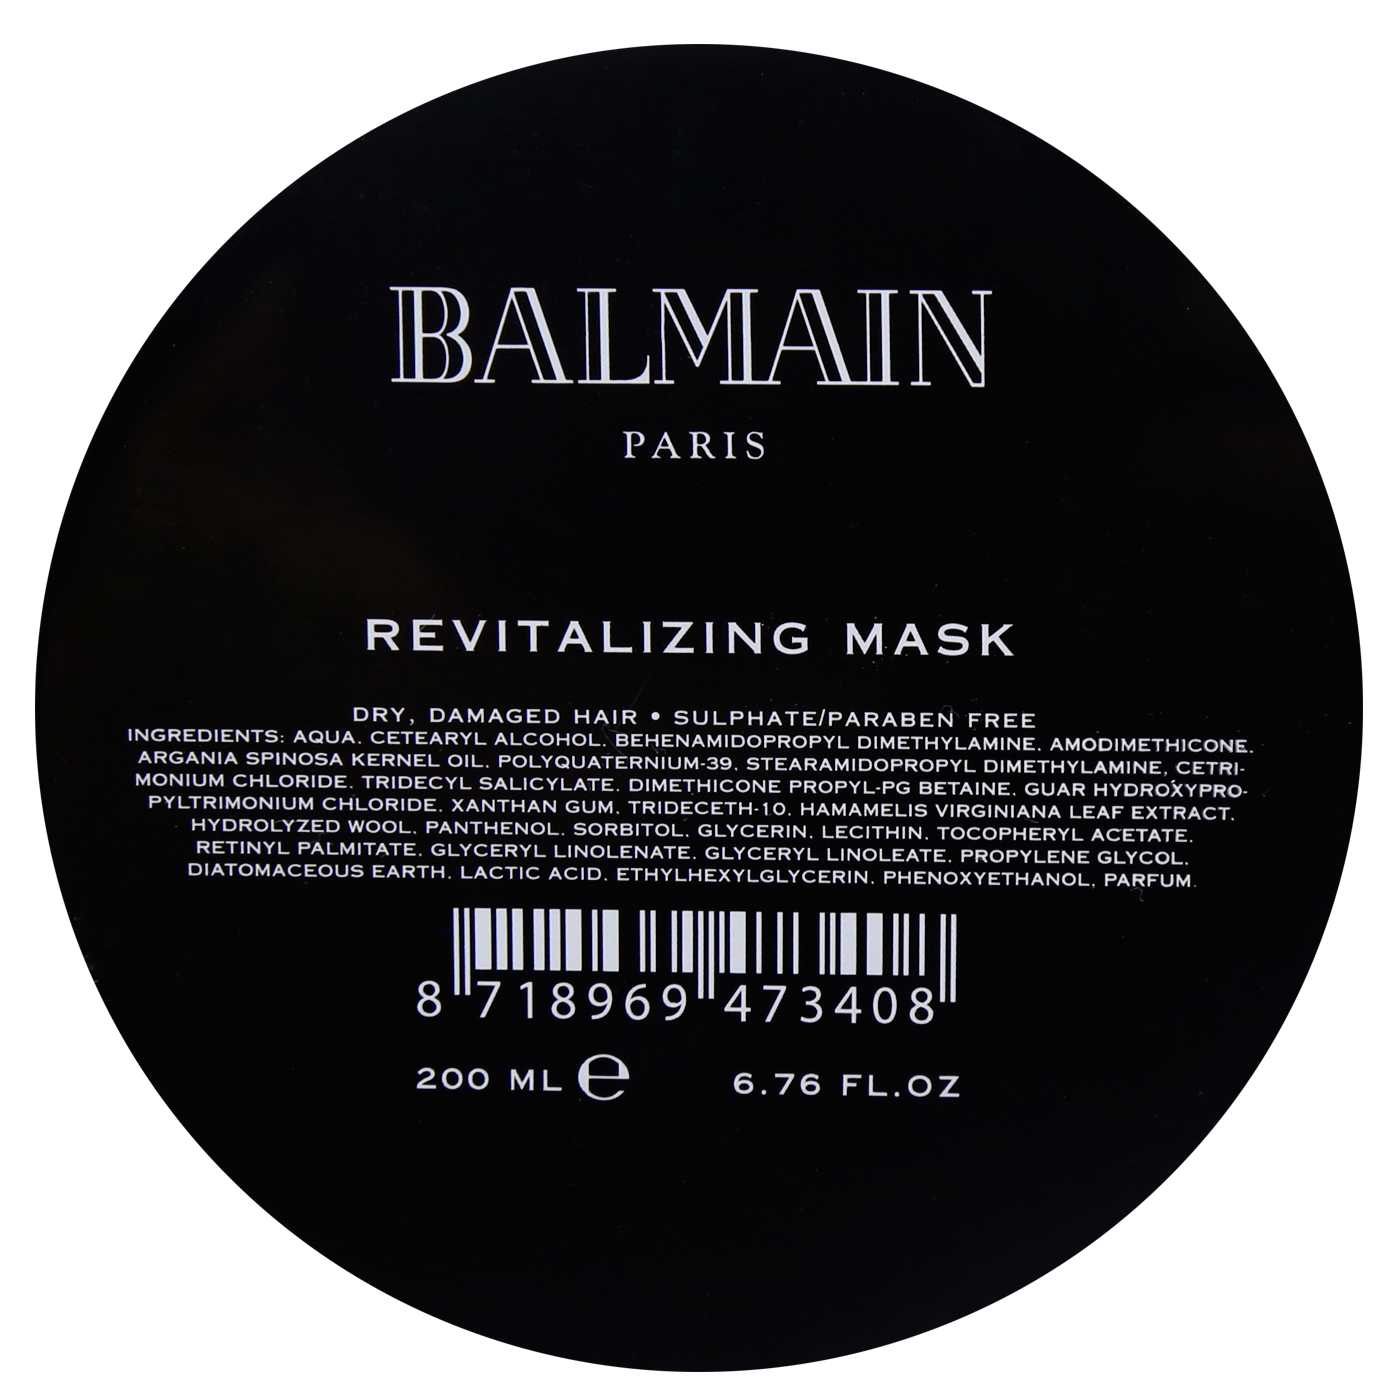 Balmain Revitalizing Mask 200 ml | Mascarilla Revitalizante